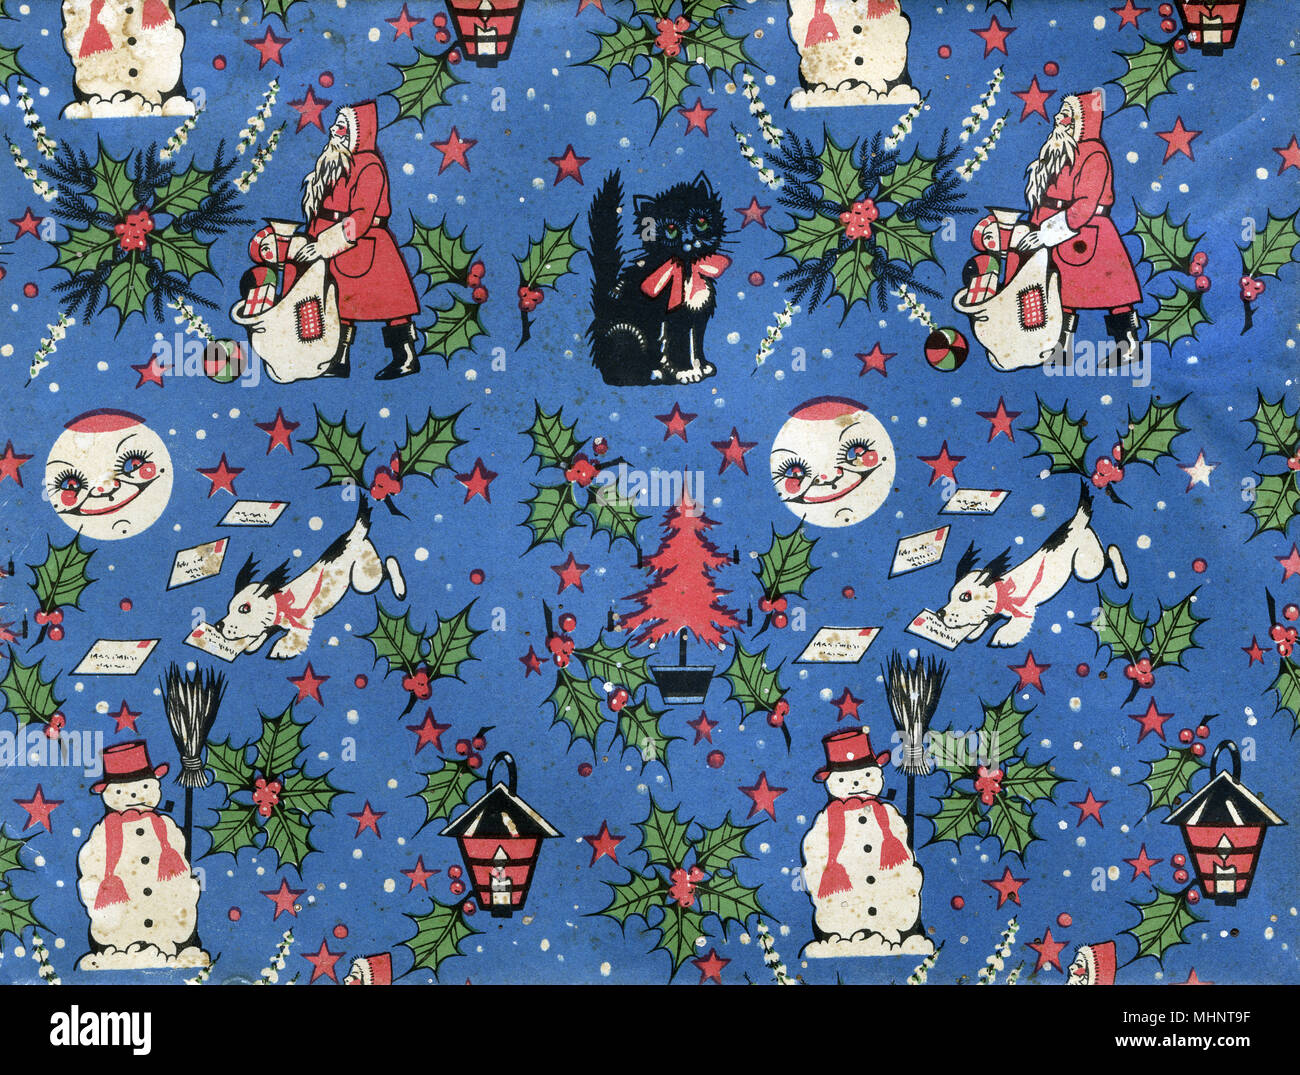 Vintage Retro Christmas Wrapping paper repeating pattern - featuring Father Christmas delivering presents, a small black kitten with a red ribbon, holly and red berries, a snowman, a dog 'helping' to deliver Christmas mail a lantern, a smiling moon, stars, snowflakes and red Christmas Trees.      Date: circa 1950s - Stock Image